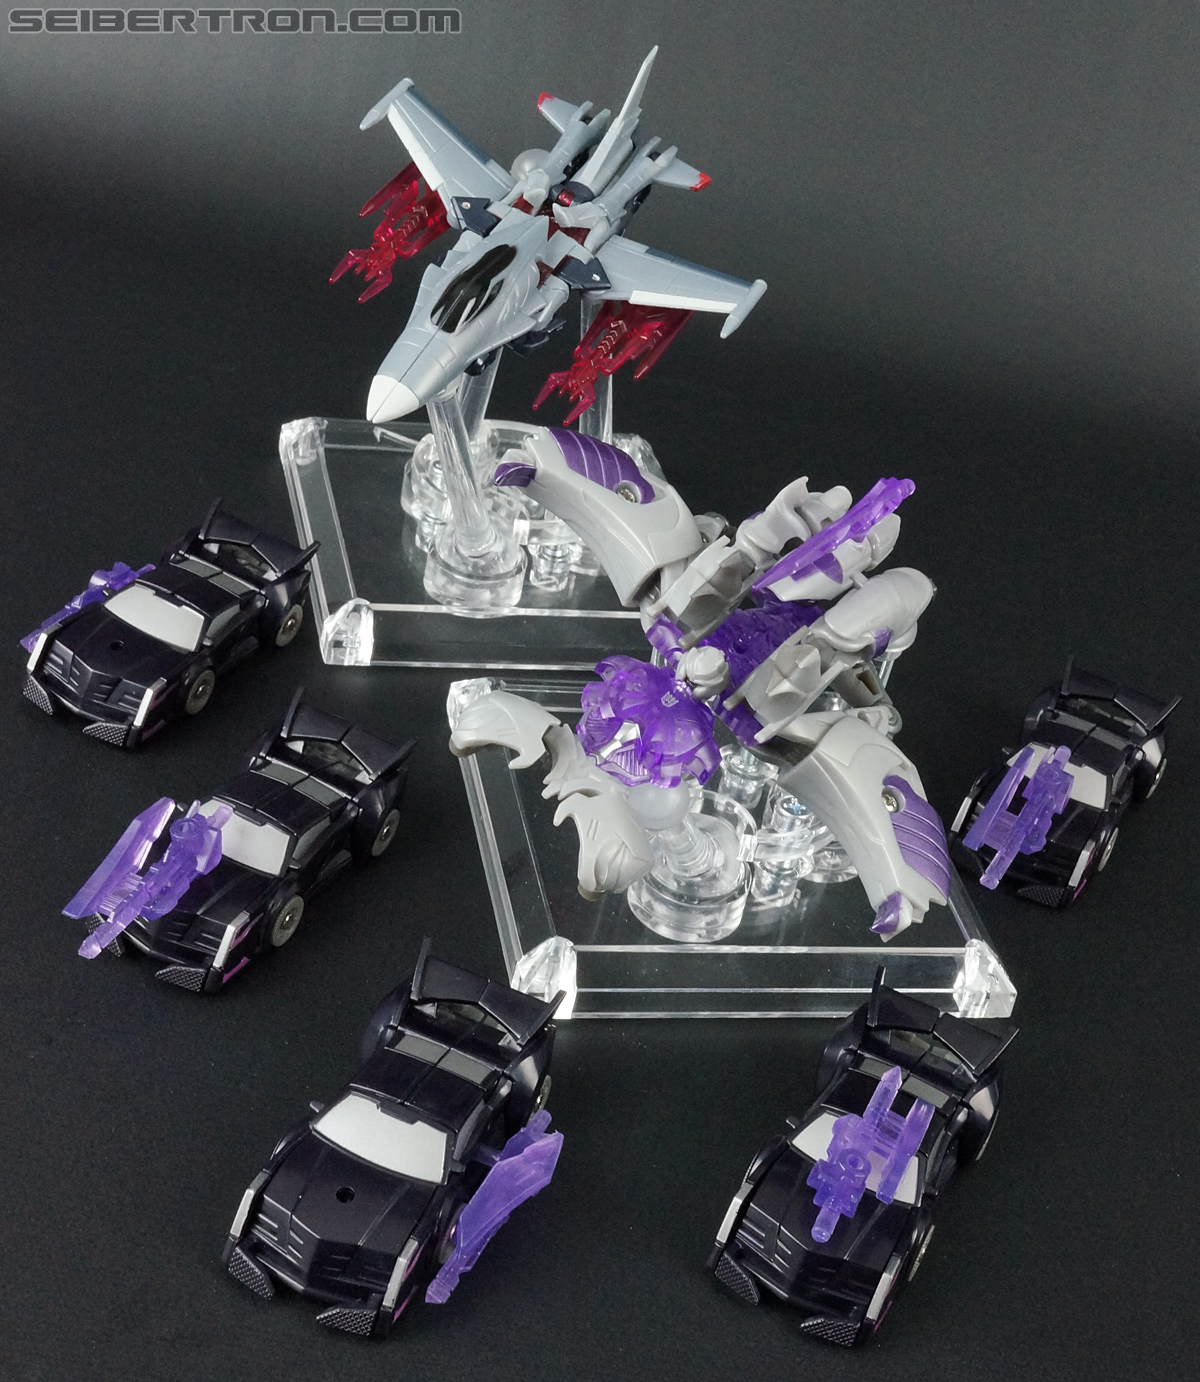 Transformers Prime: Cyberverse Megatron (Image #50 of 144)